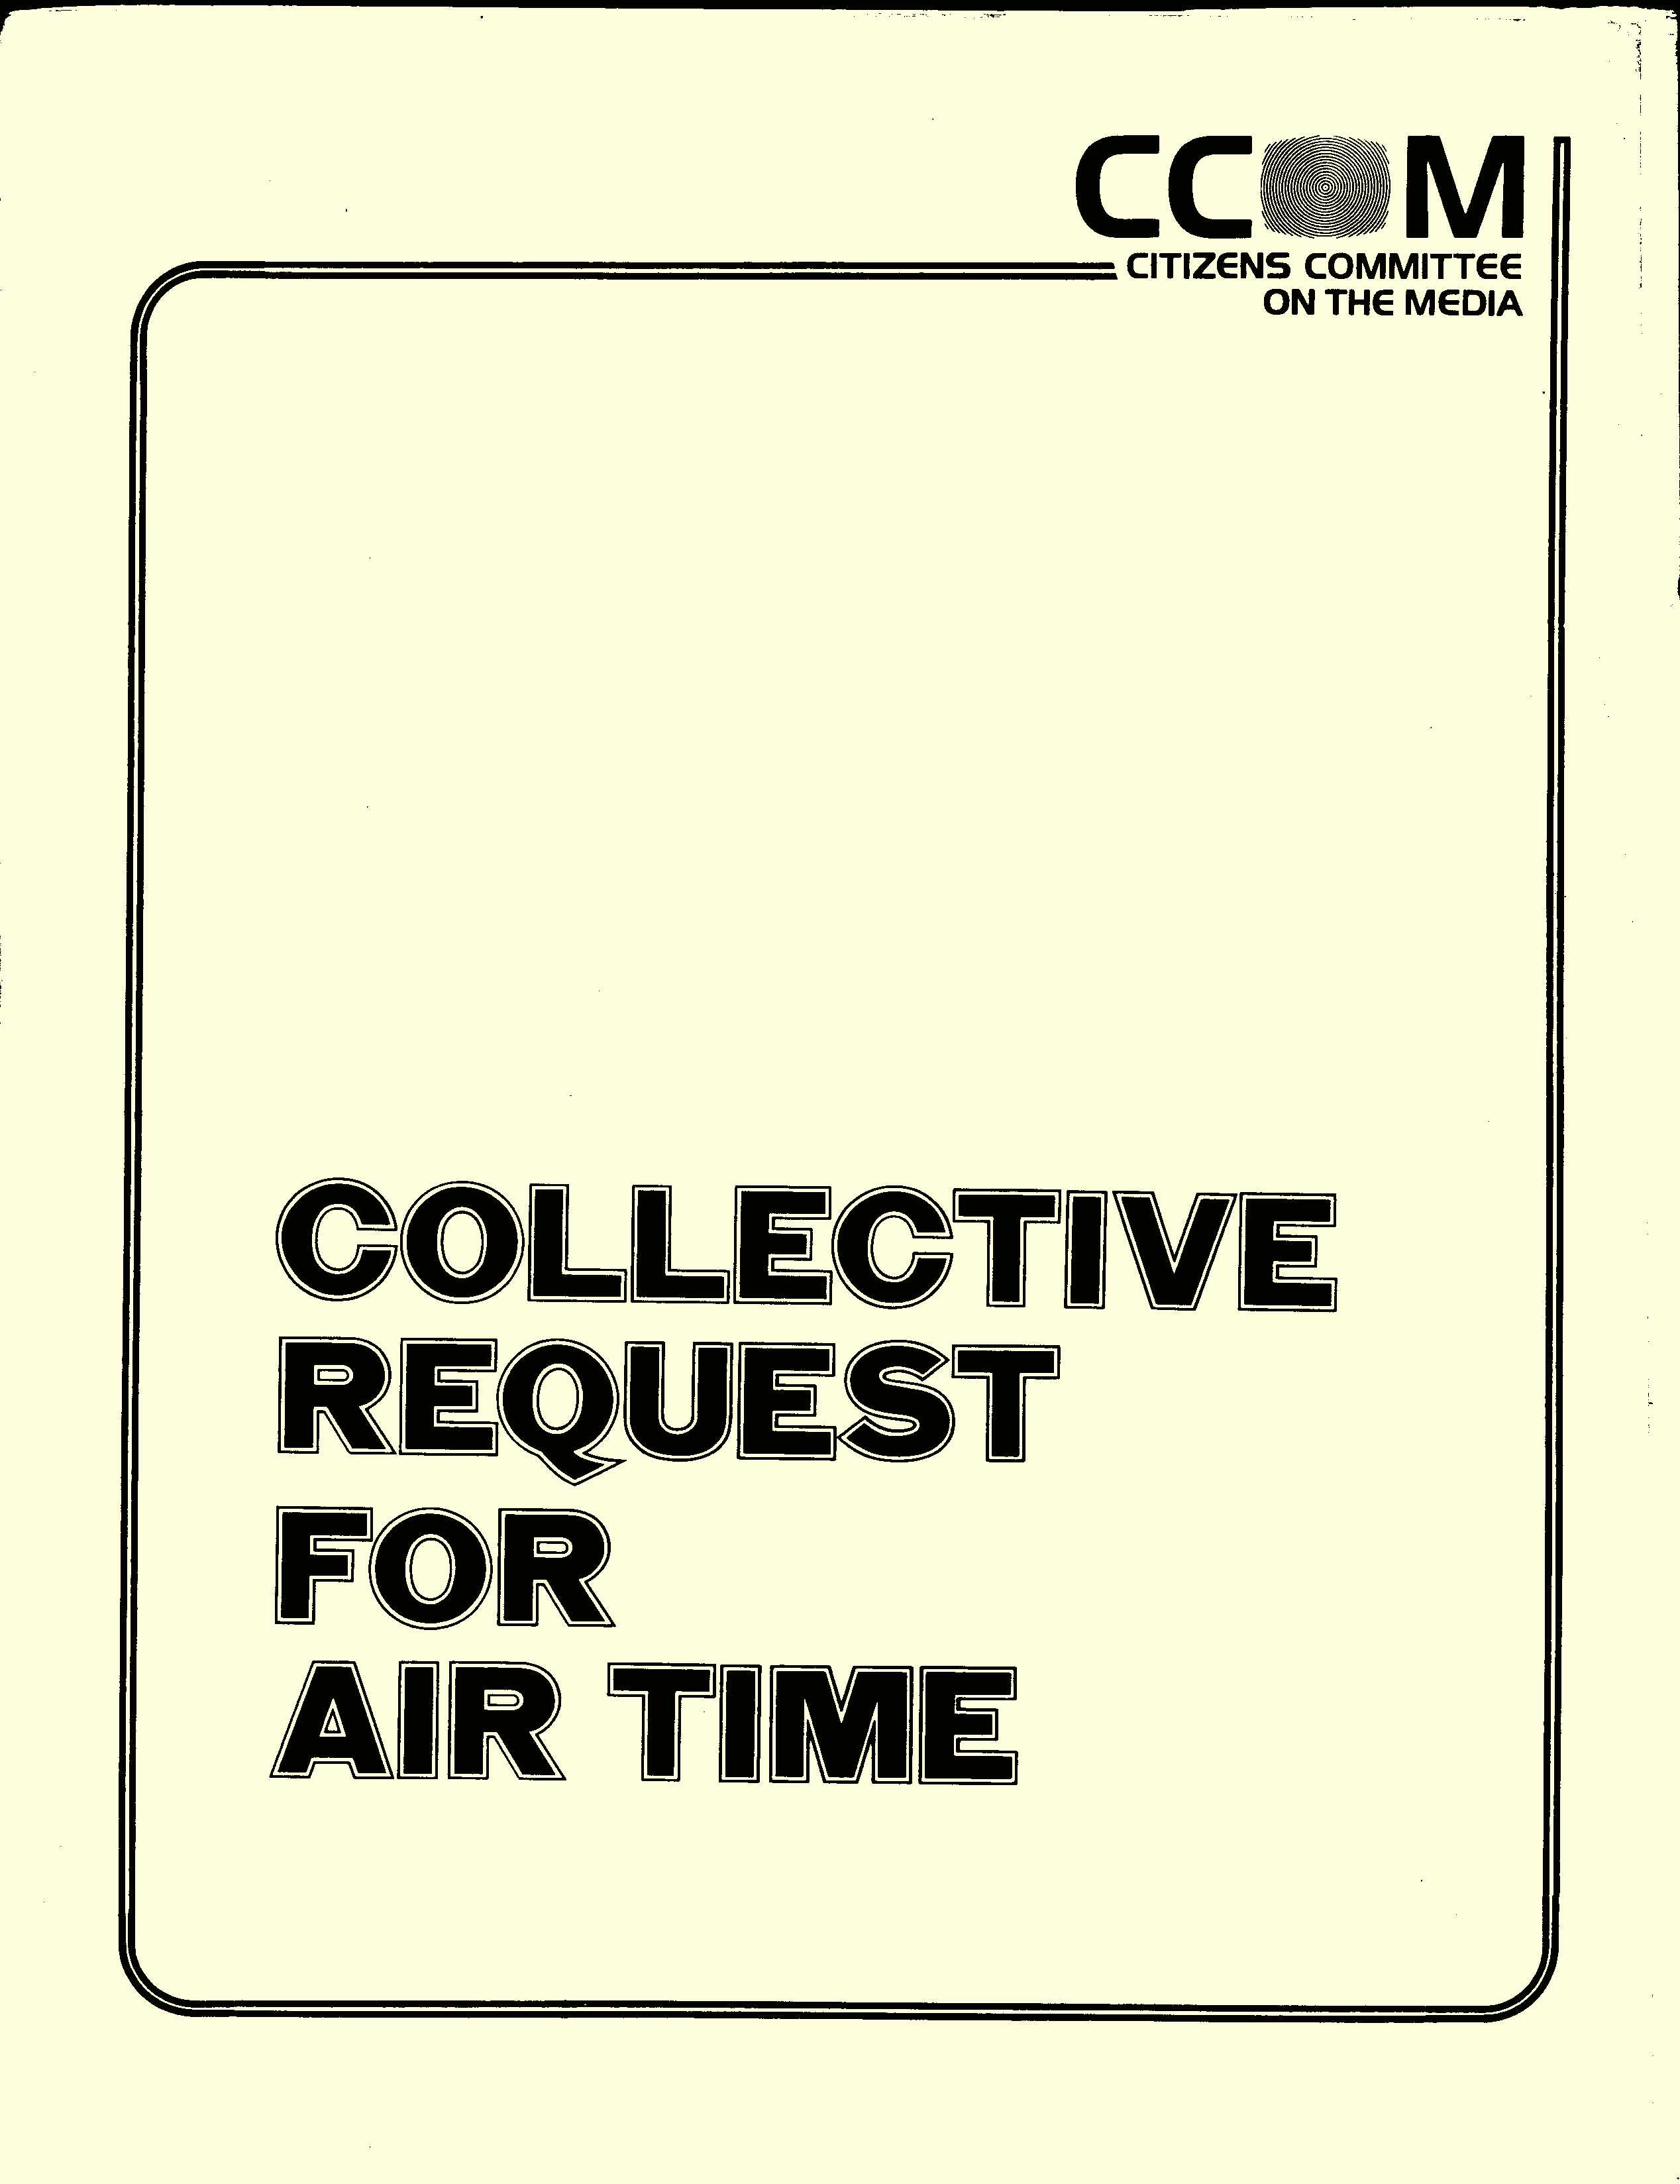 CCOM Collective Request for Air Time, 1980 January, front cover.